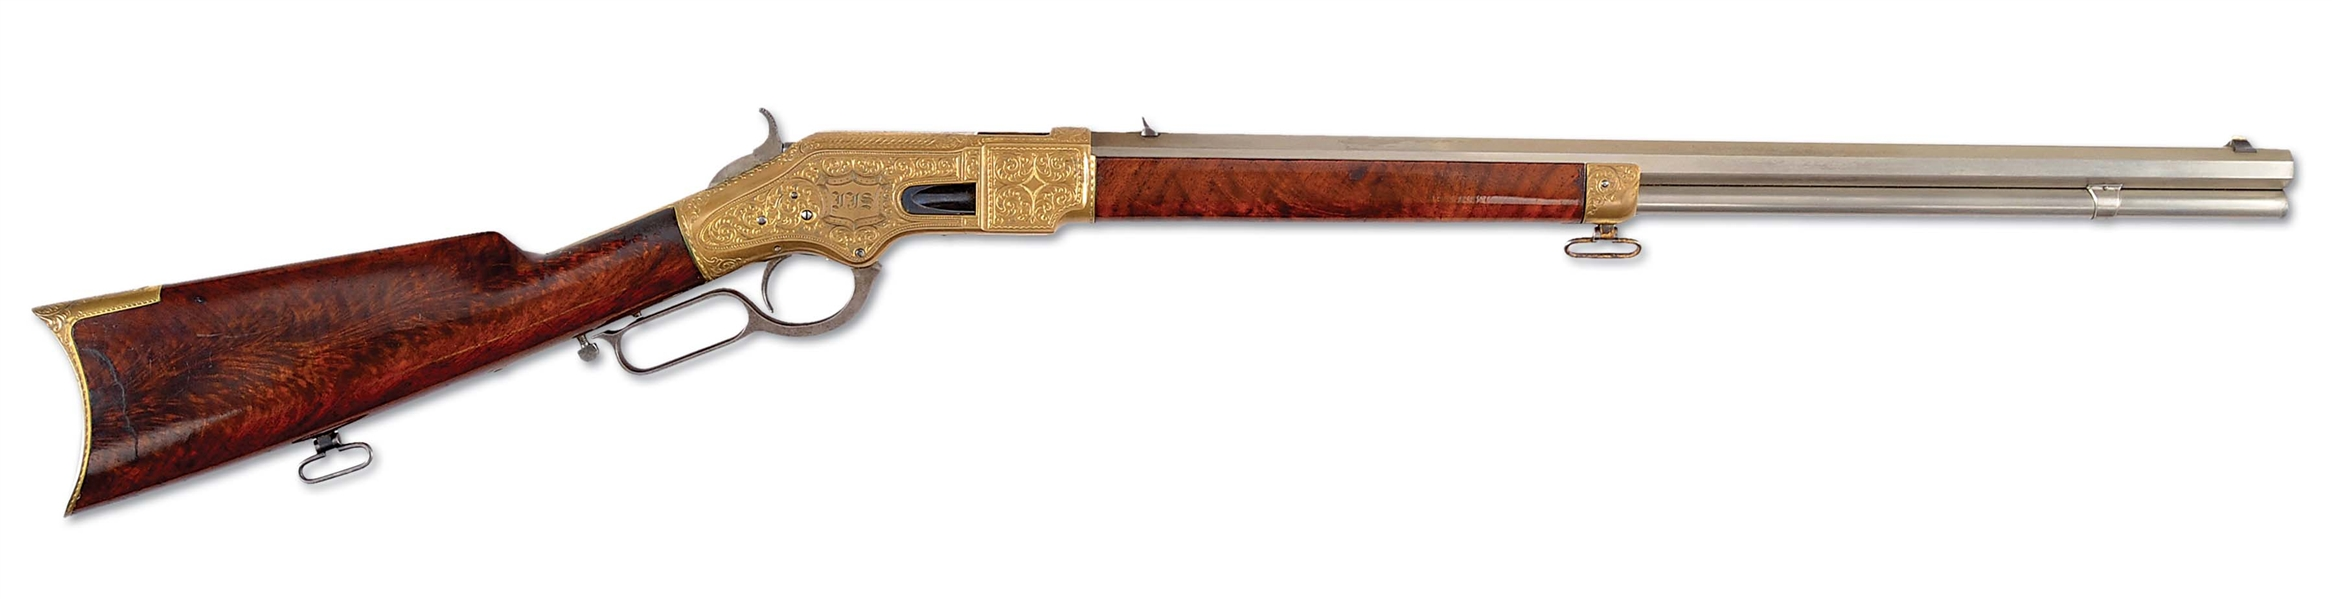 (A) WONDERFUL THOMAS OCONNEL FACTORY ENGRAVED 1866 WINCHESTER RIFLE